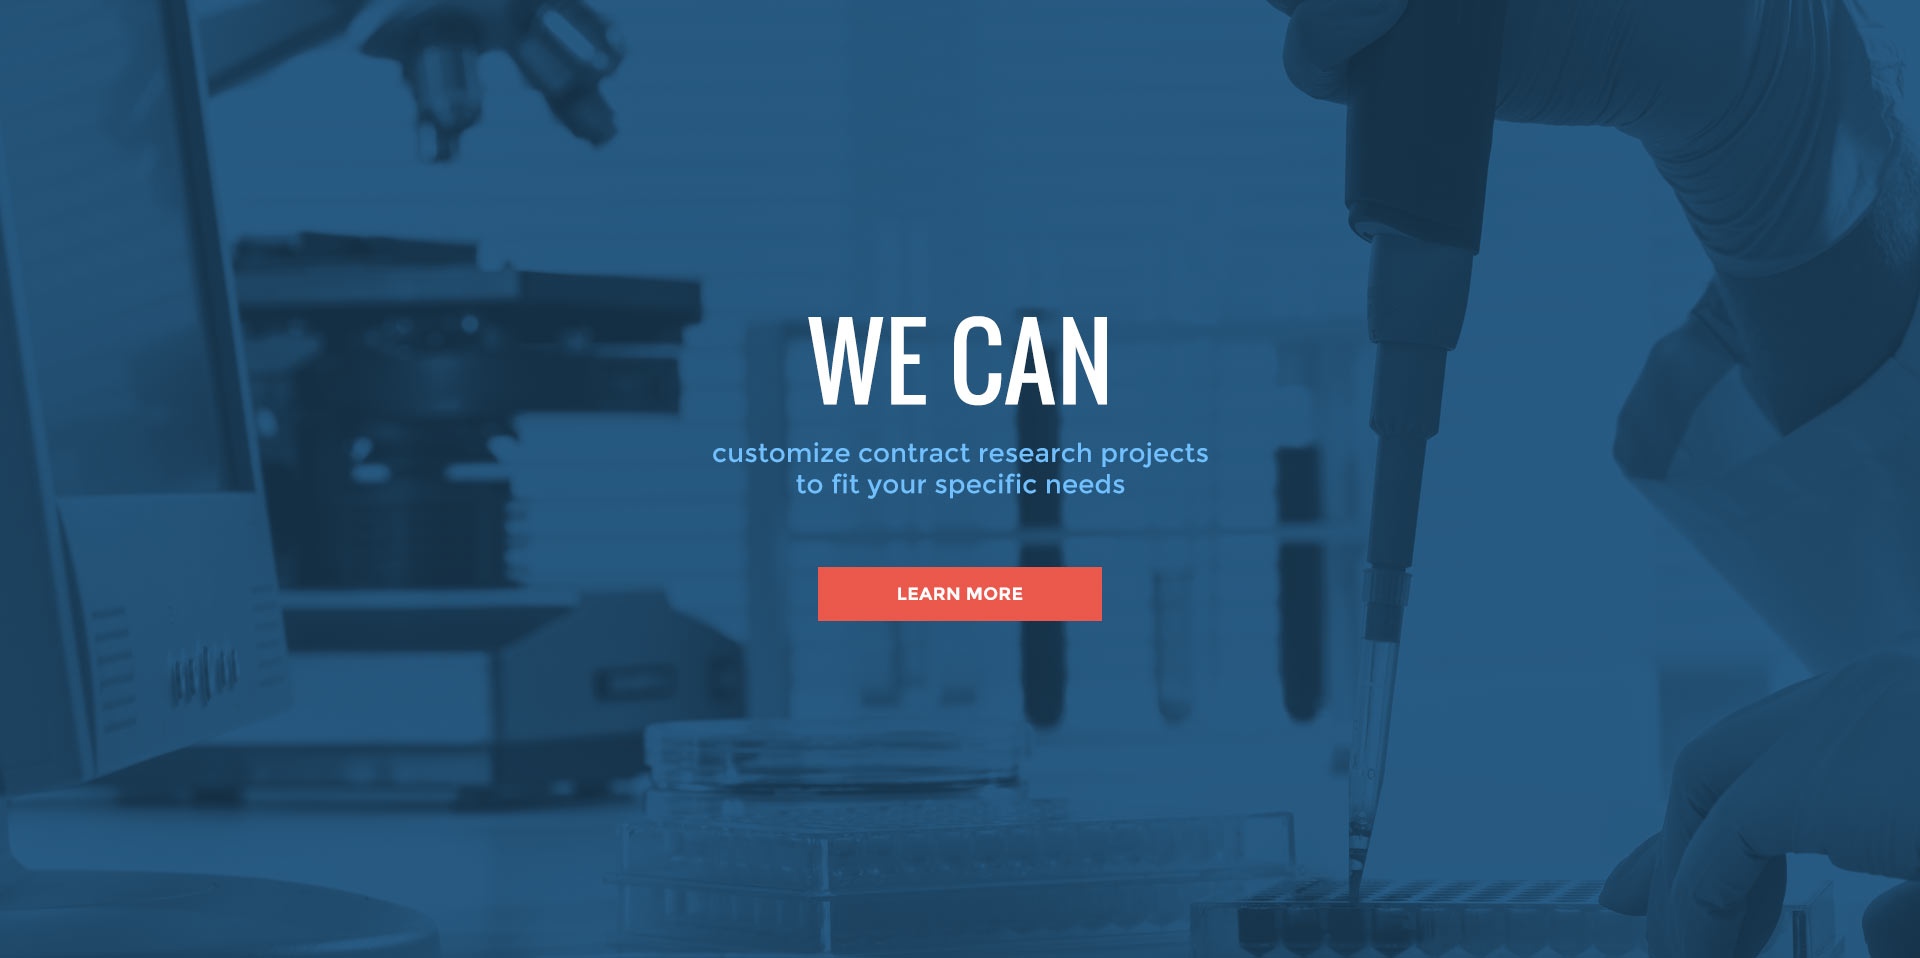 We Can customize research projects